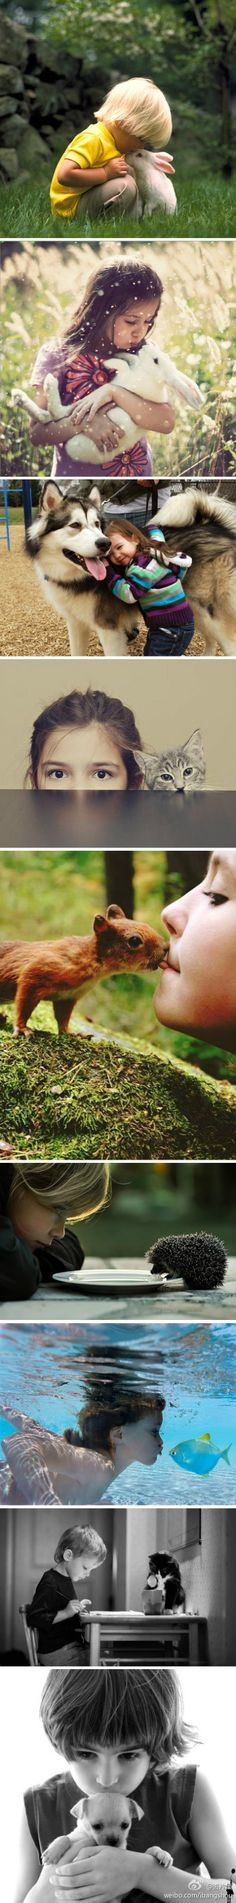 so awesome - kids with cute animals